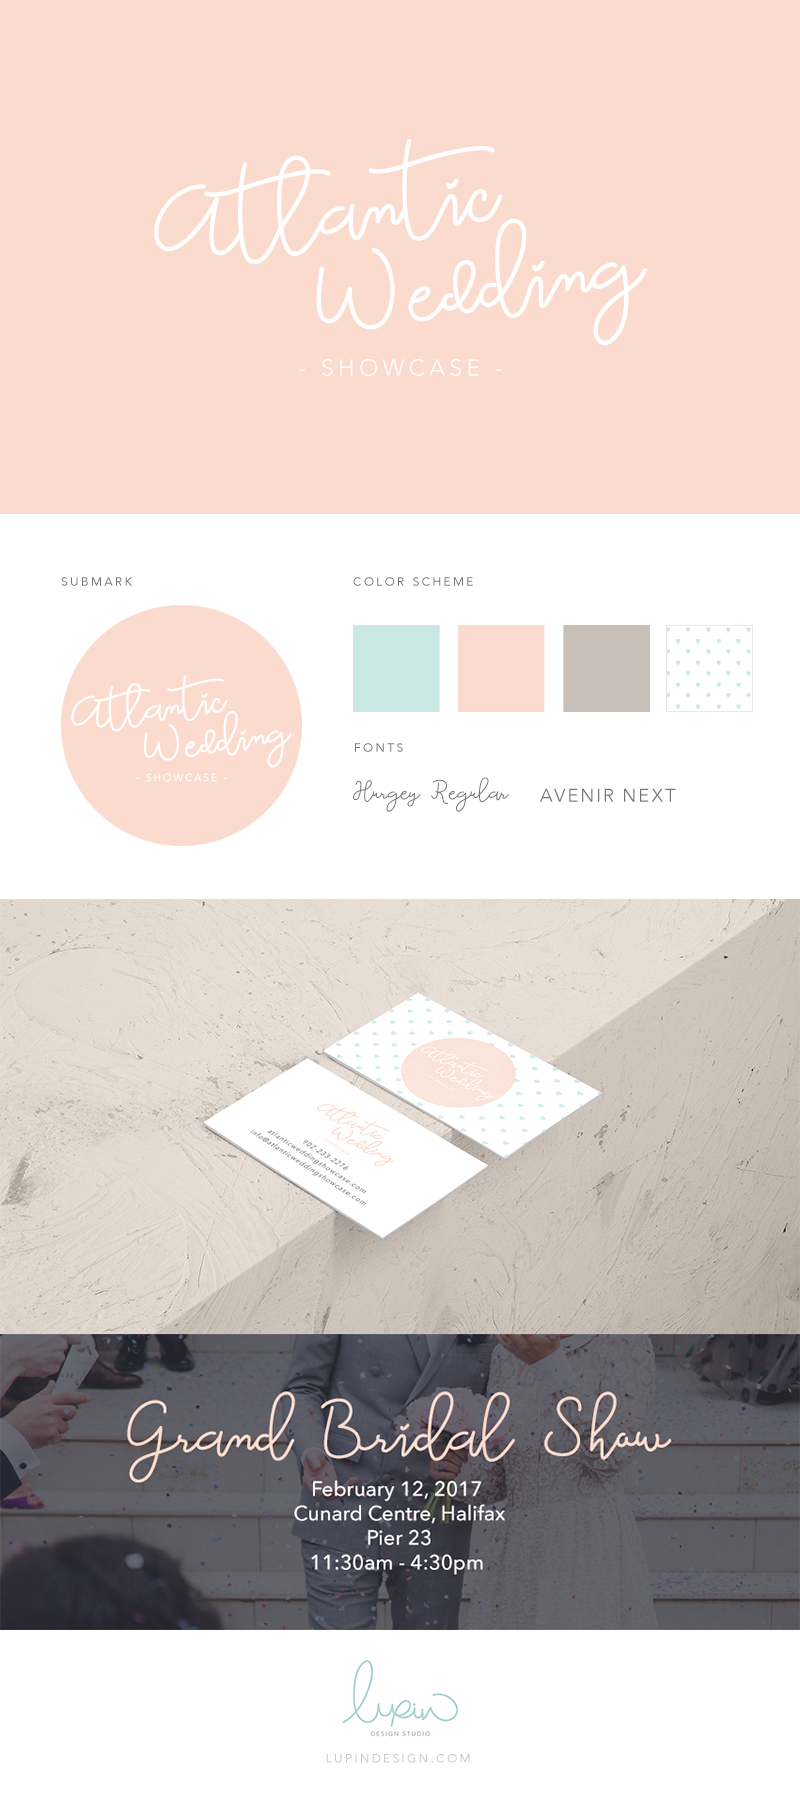 Branding: Atlantic Wedding Showcase | Lupin Design Studio